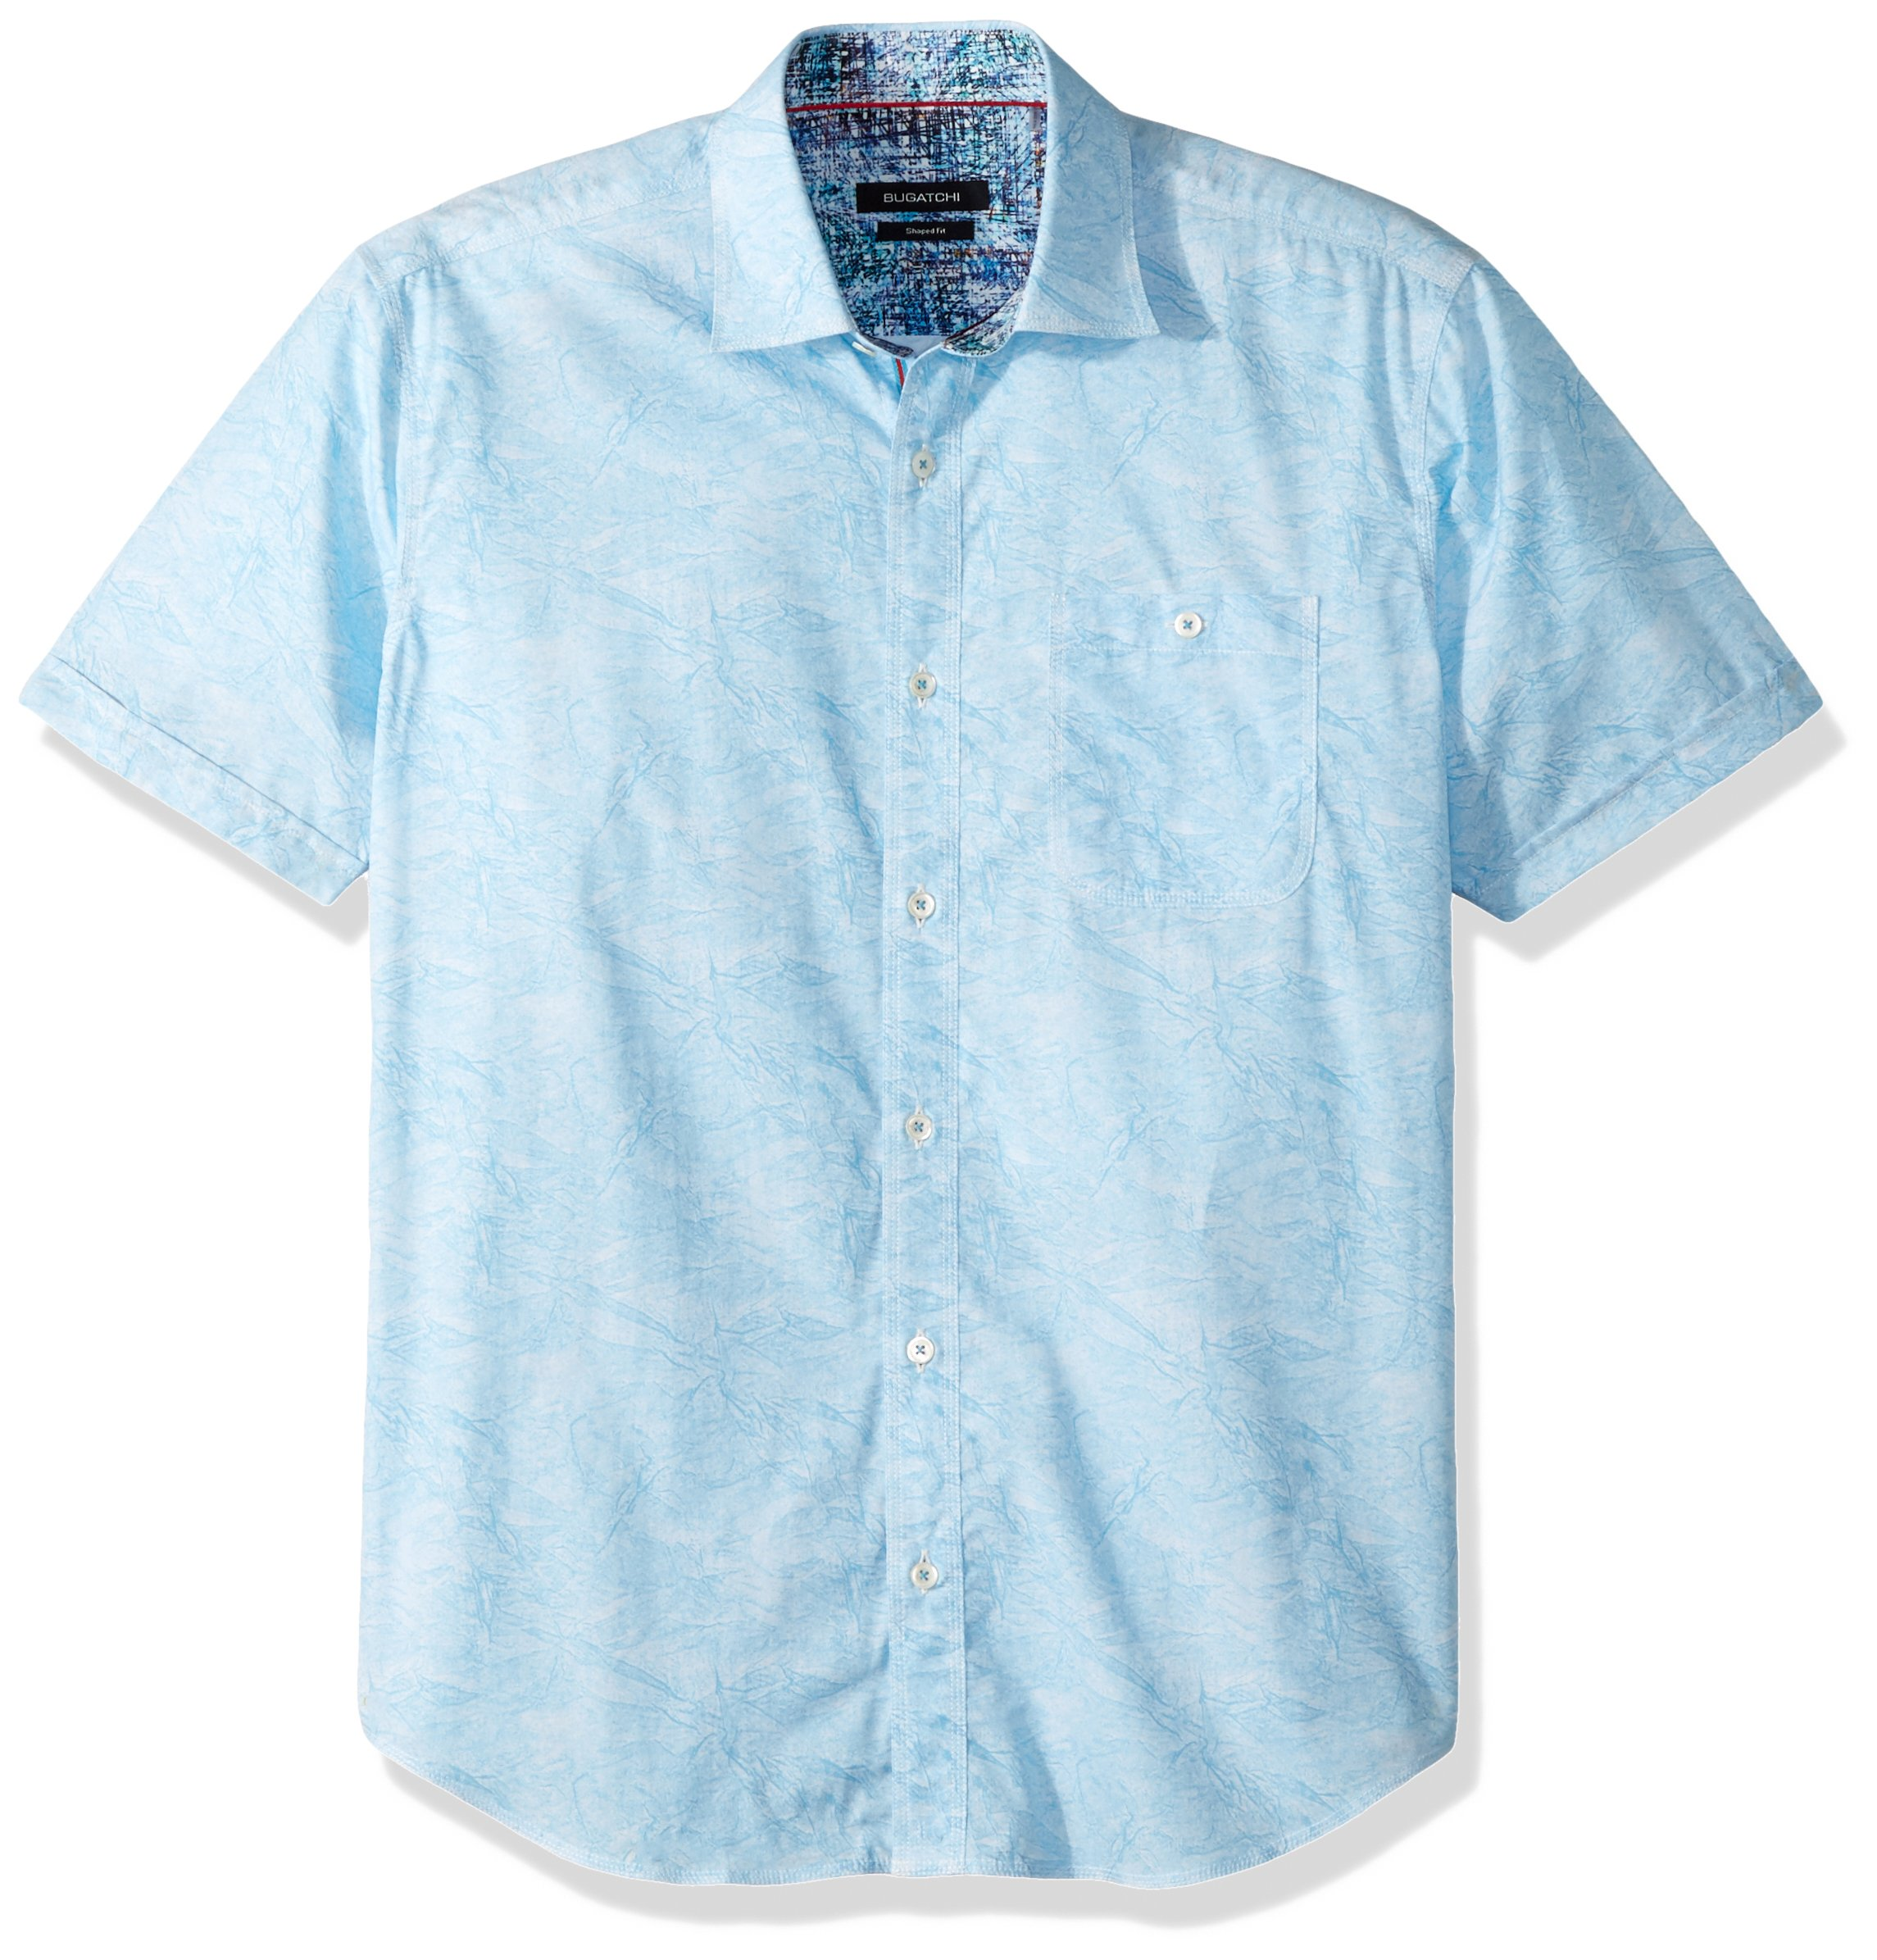 BUGATCHI Men's Cotton Shaped Fit Short Sleeve Drylands Woven, Ocean, L by Bugatchi (Image #1)